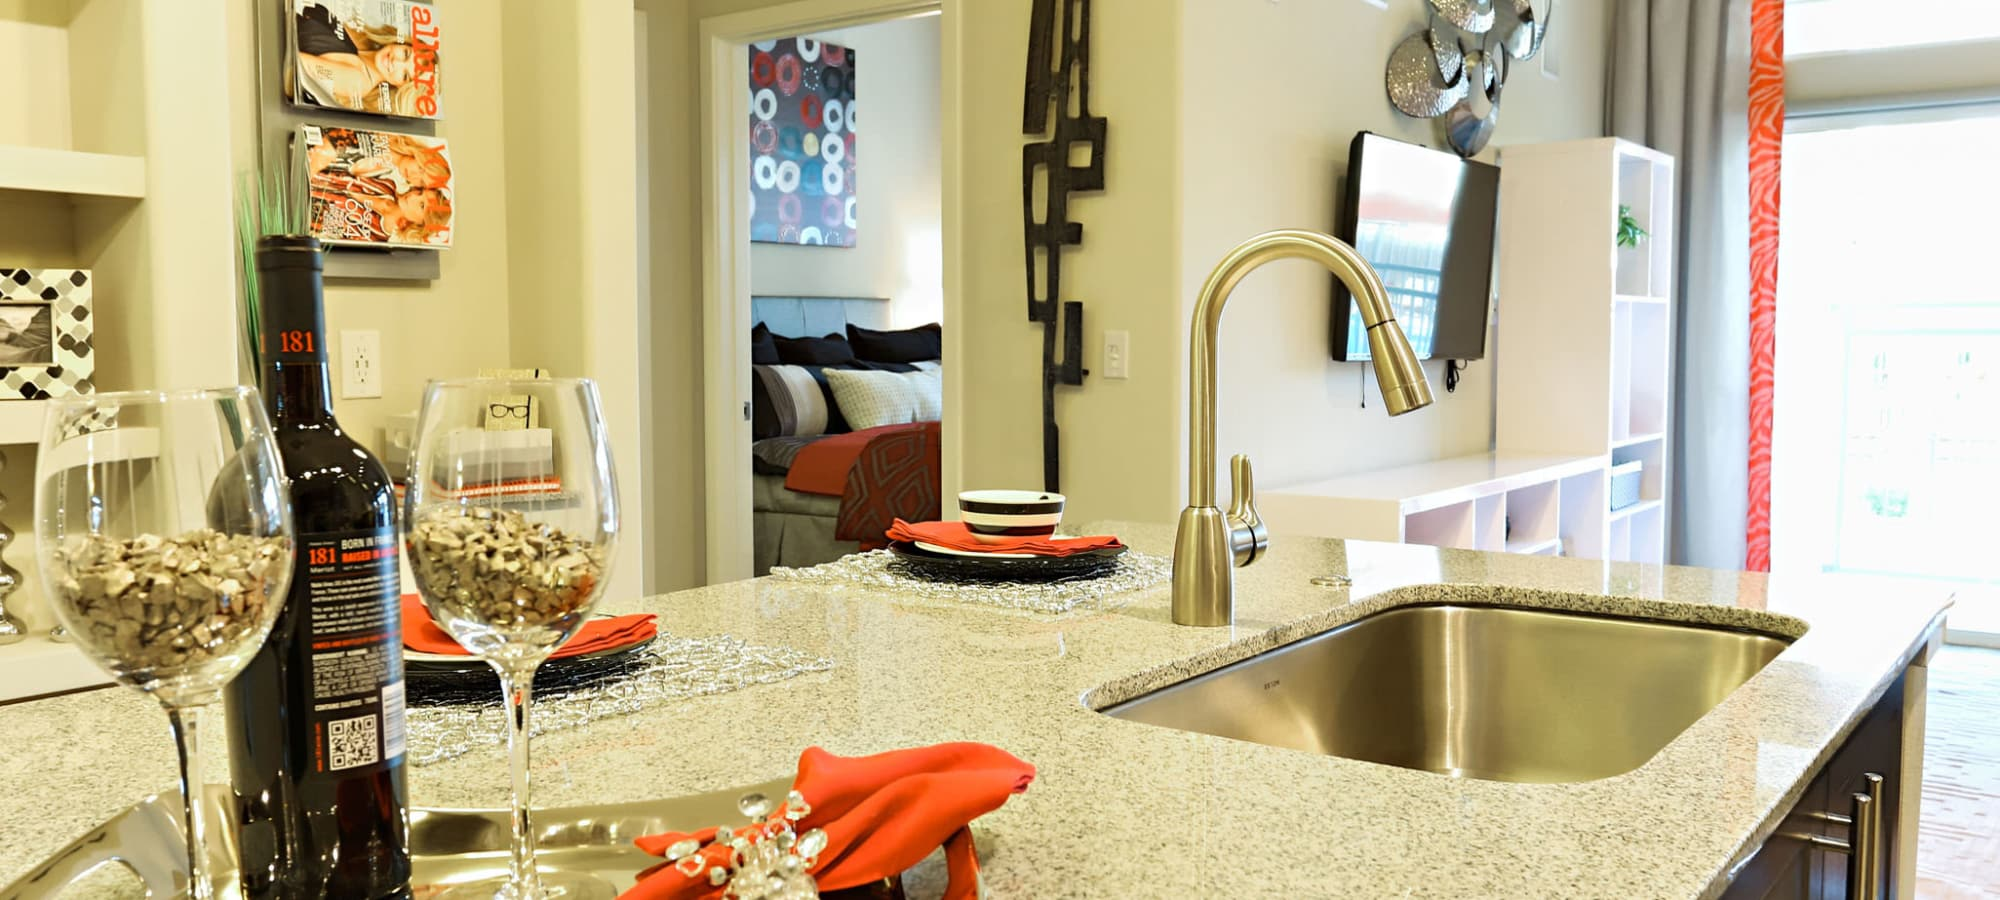 Granite countertops in model home at The Hyve in Tempe, Arizona